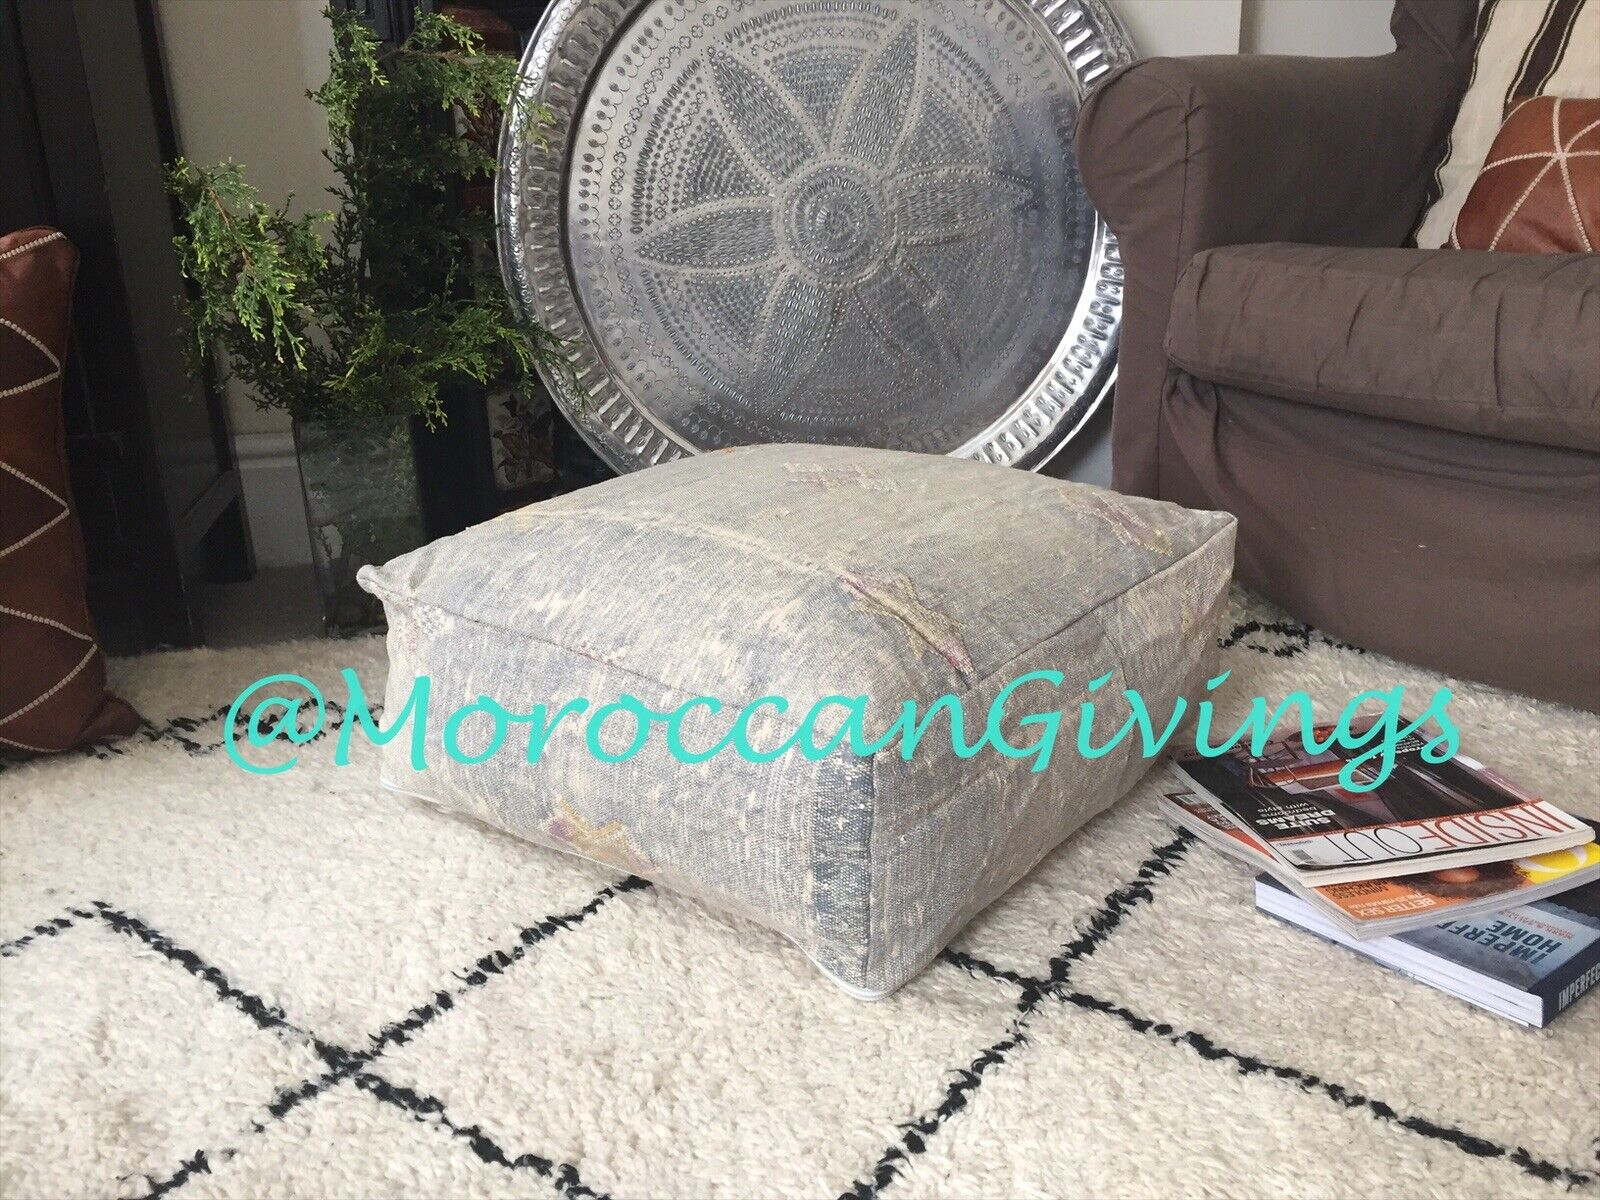 Floor Cushion   Vintage MGoldccan Pouffe made of Sabra  Rug      Pillow   Stuffed